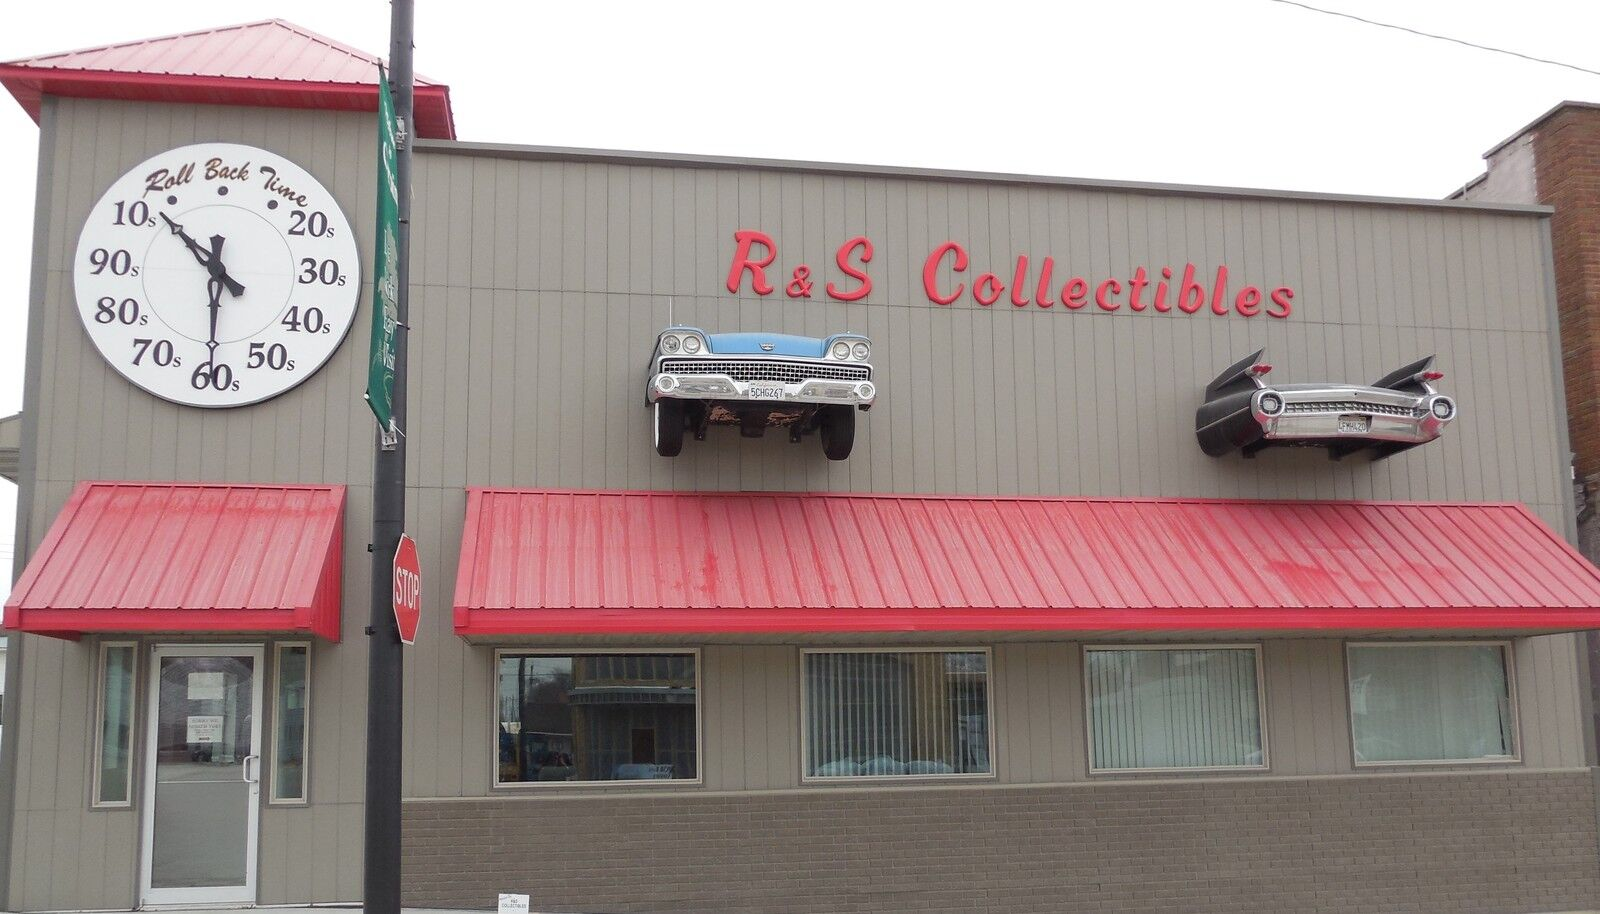 R&S Auto Sales and Collectibles